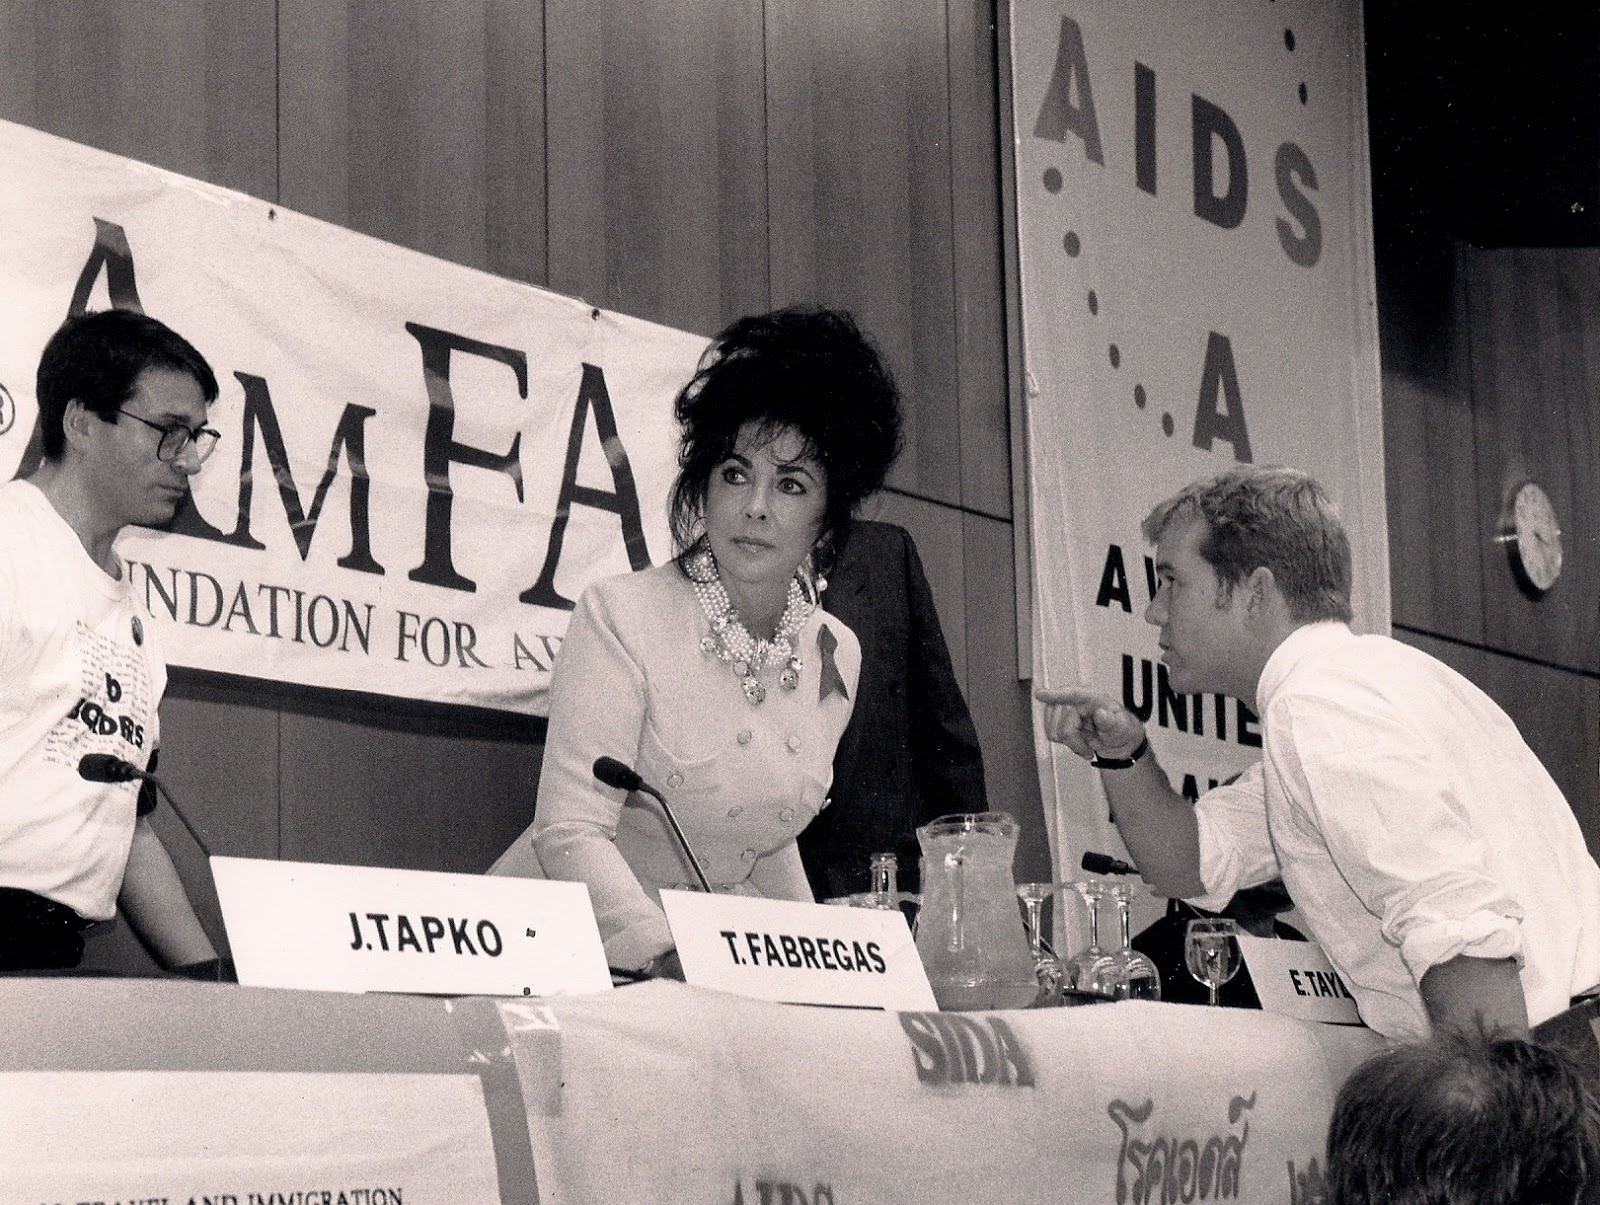 Elizabeth Taylor at an AIDS event